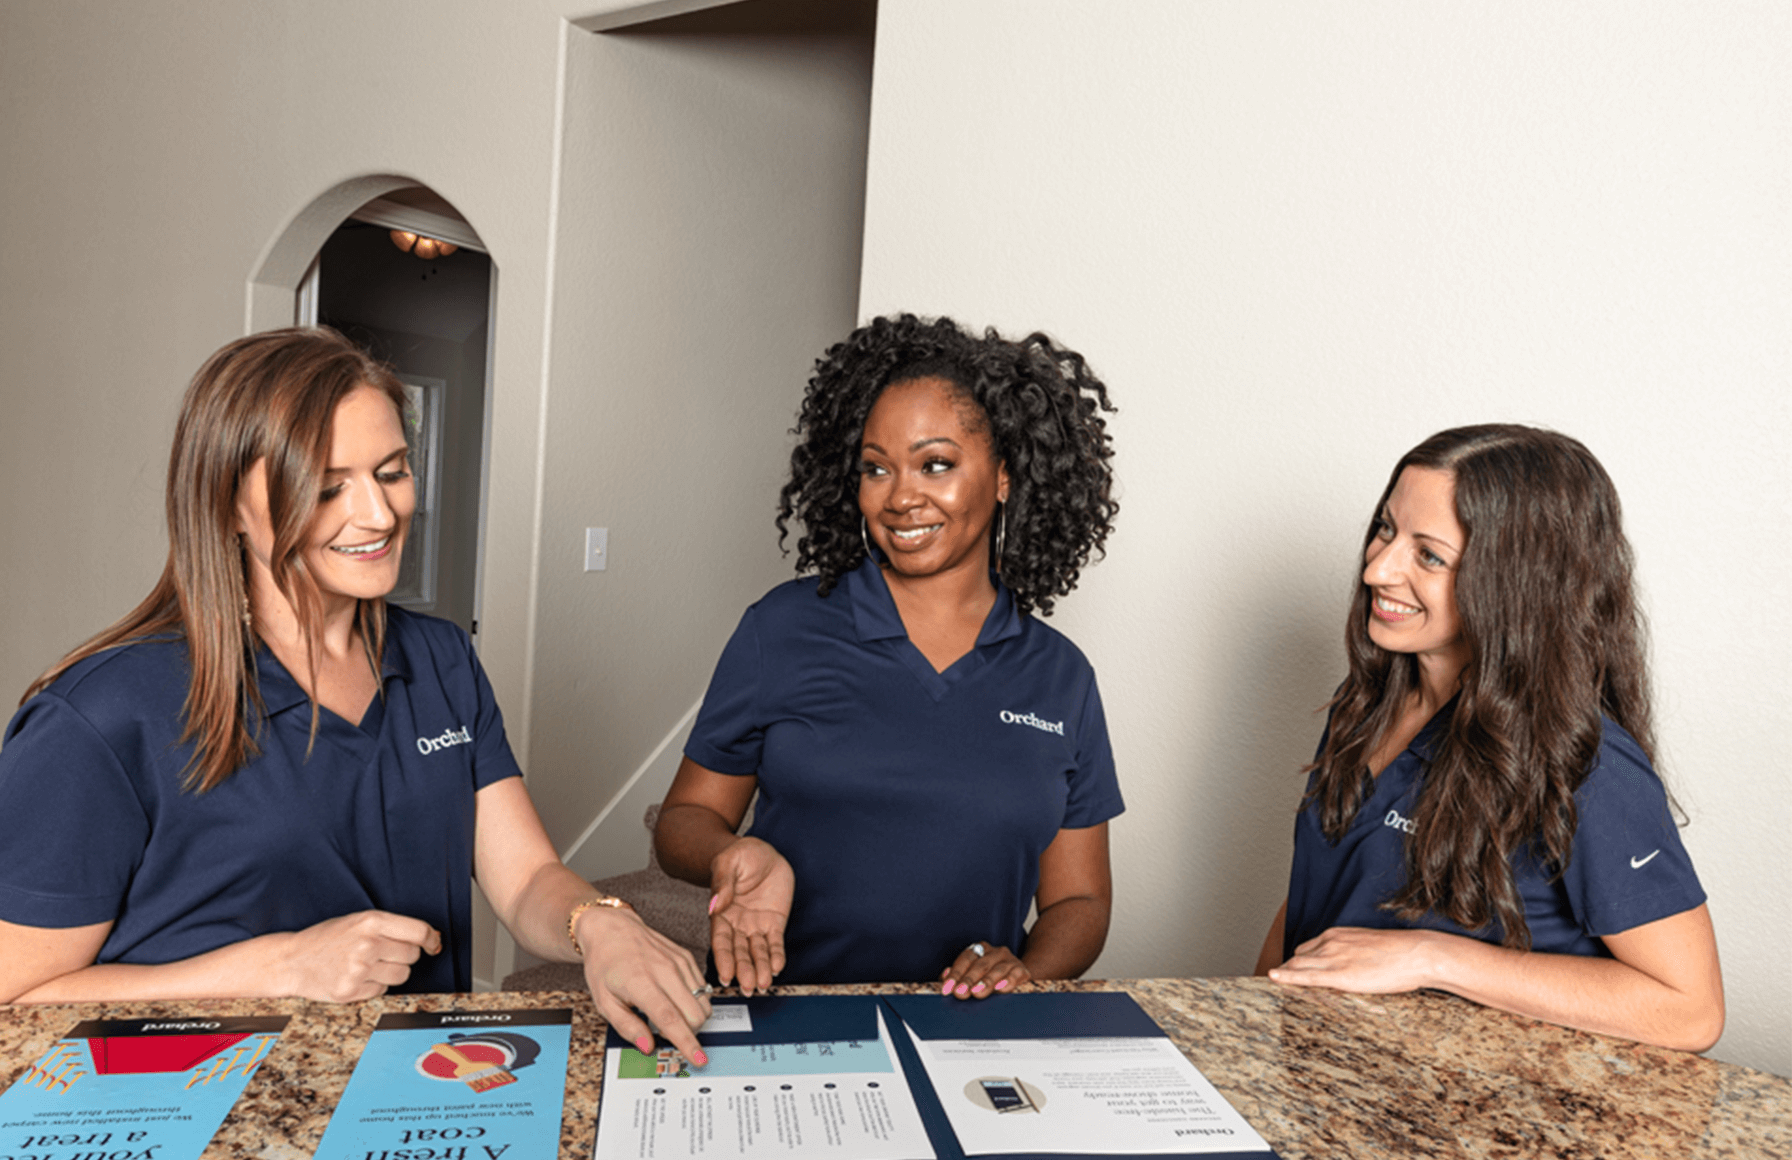 Three Orchard Home Advisors during an open house in Austin